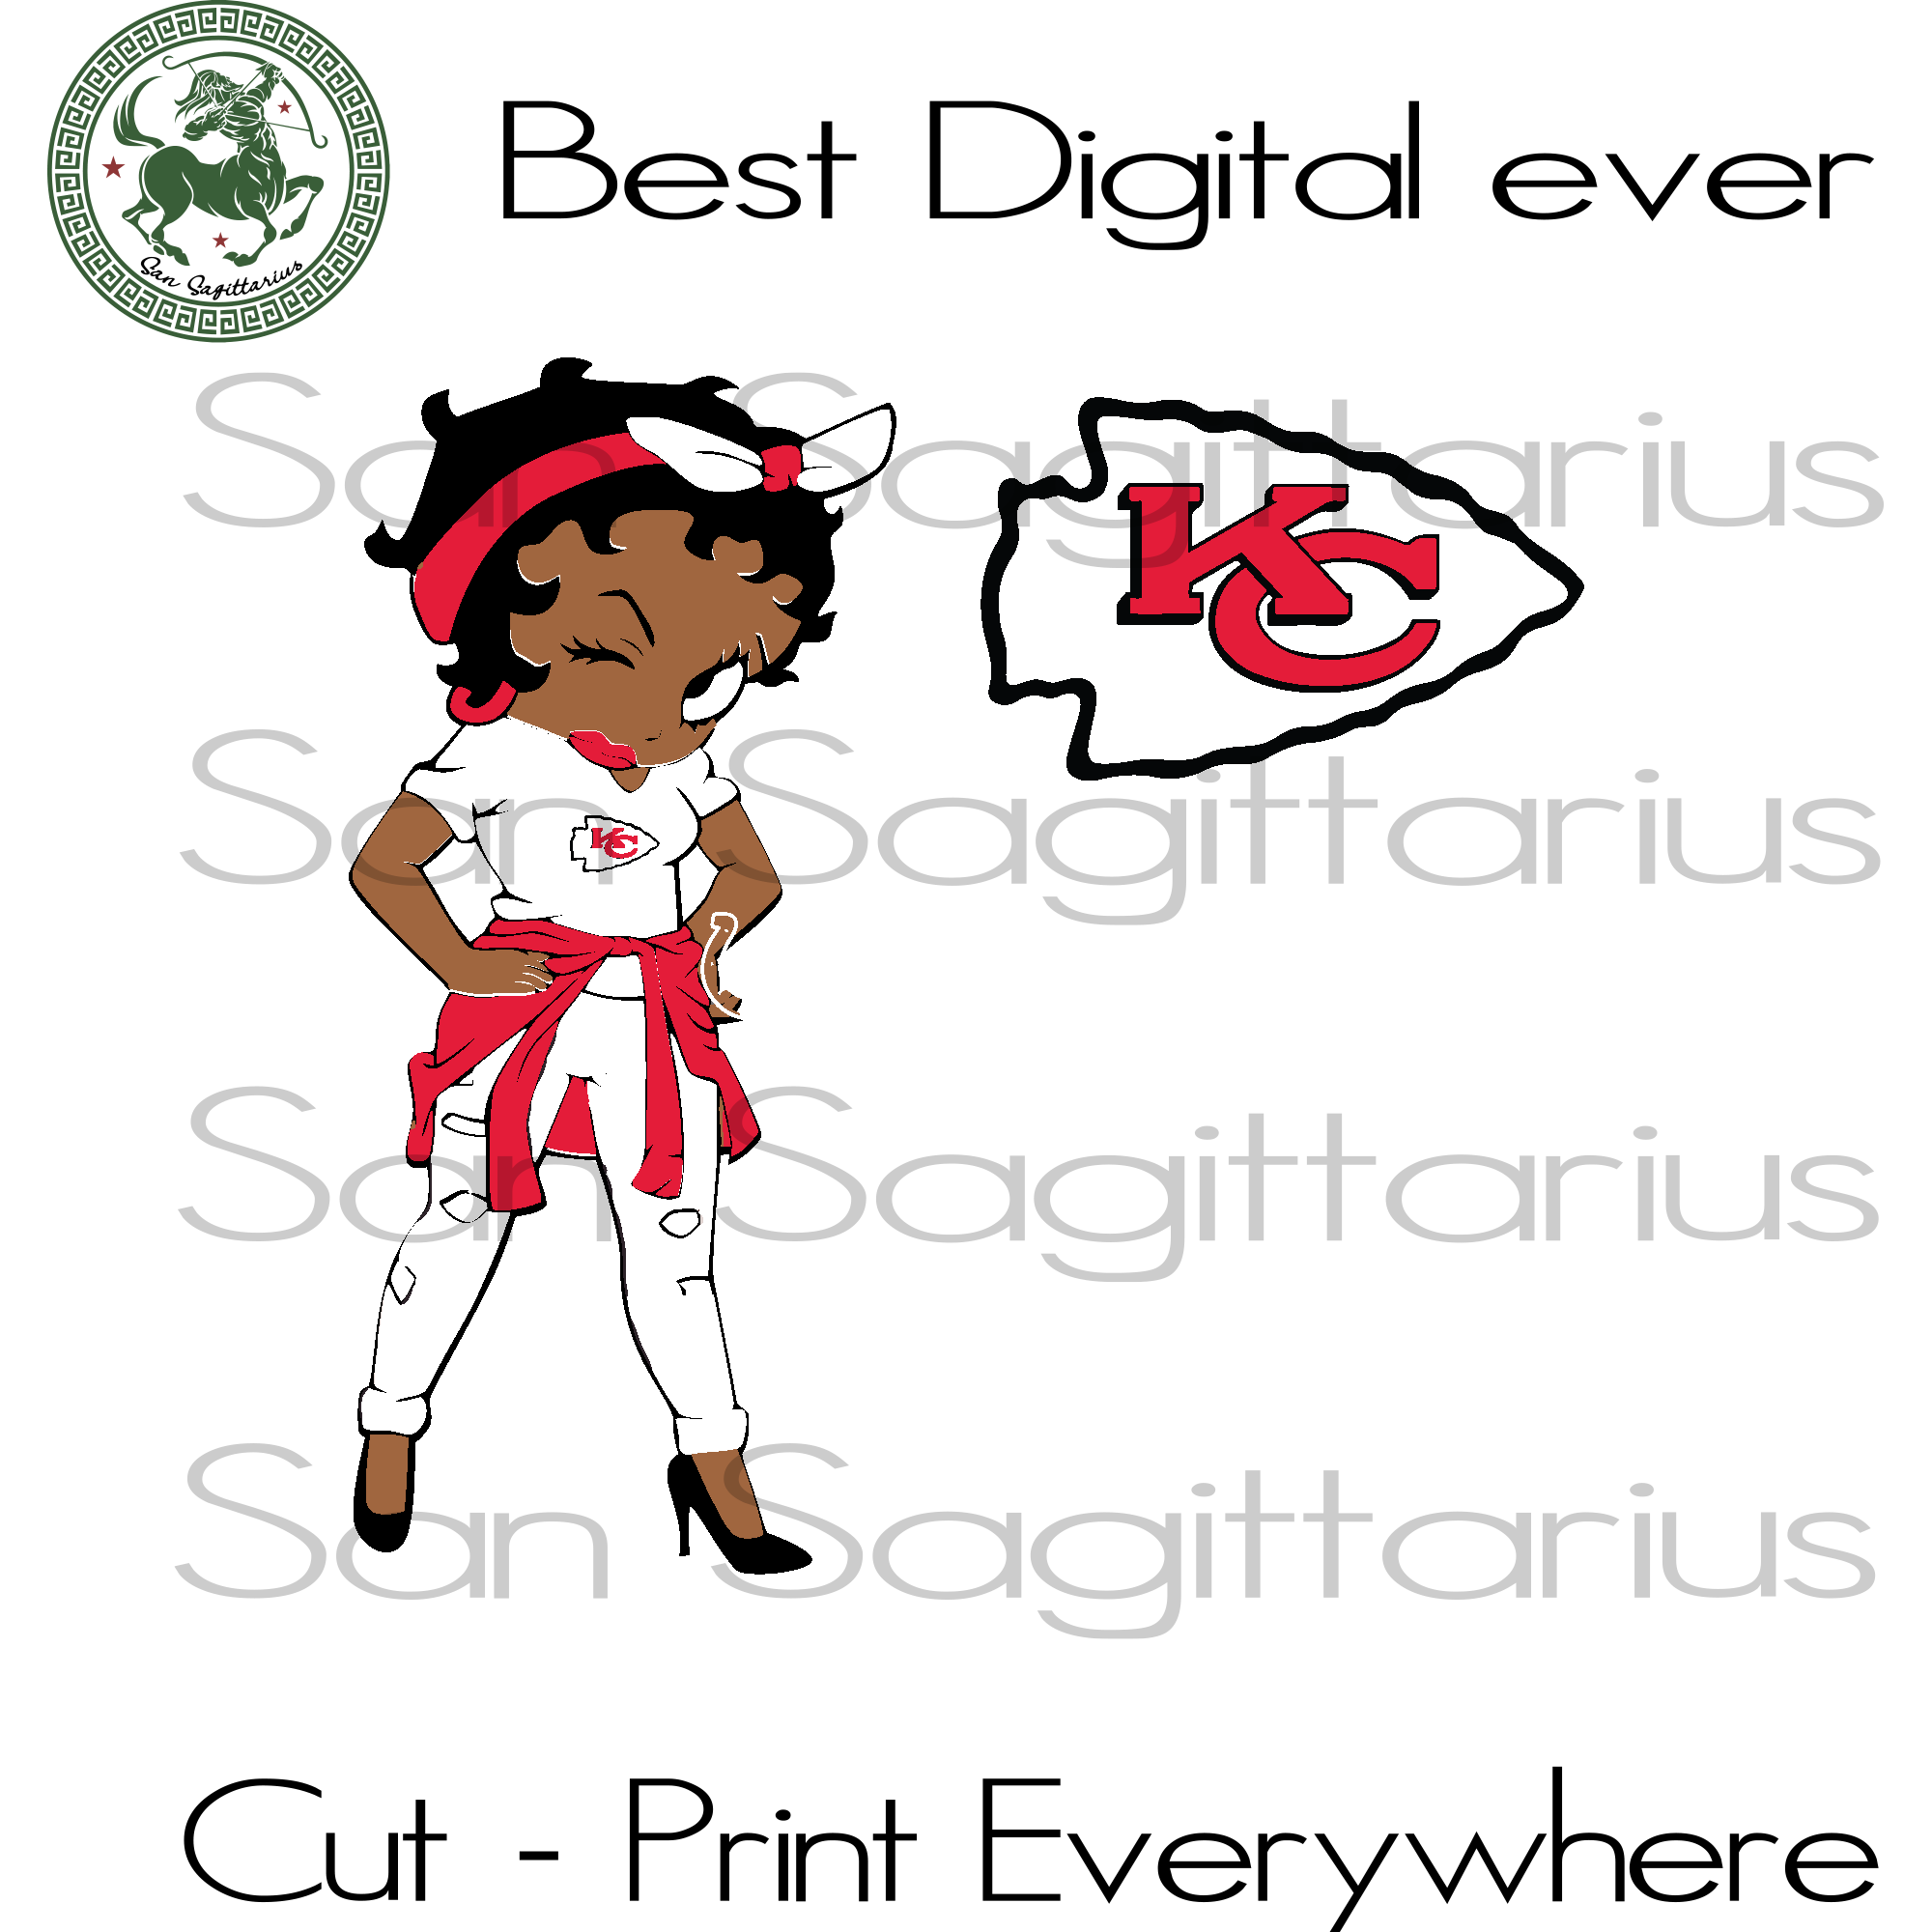 Kansas City Chiefs NFL Betty Boobs Girl SVG Files For Cricut Silhouette Instant Download | San Sagittarius